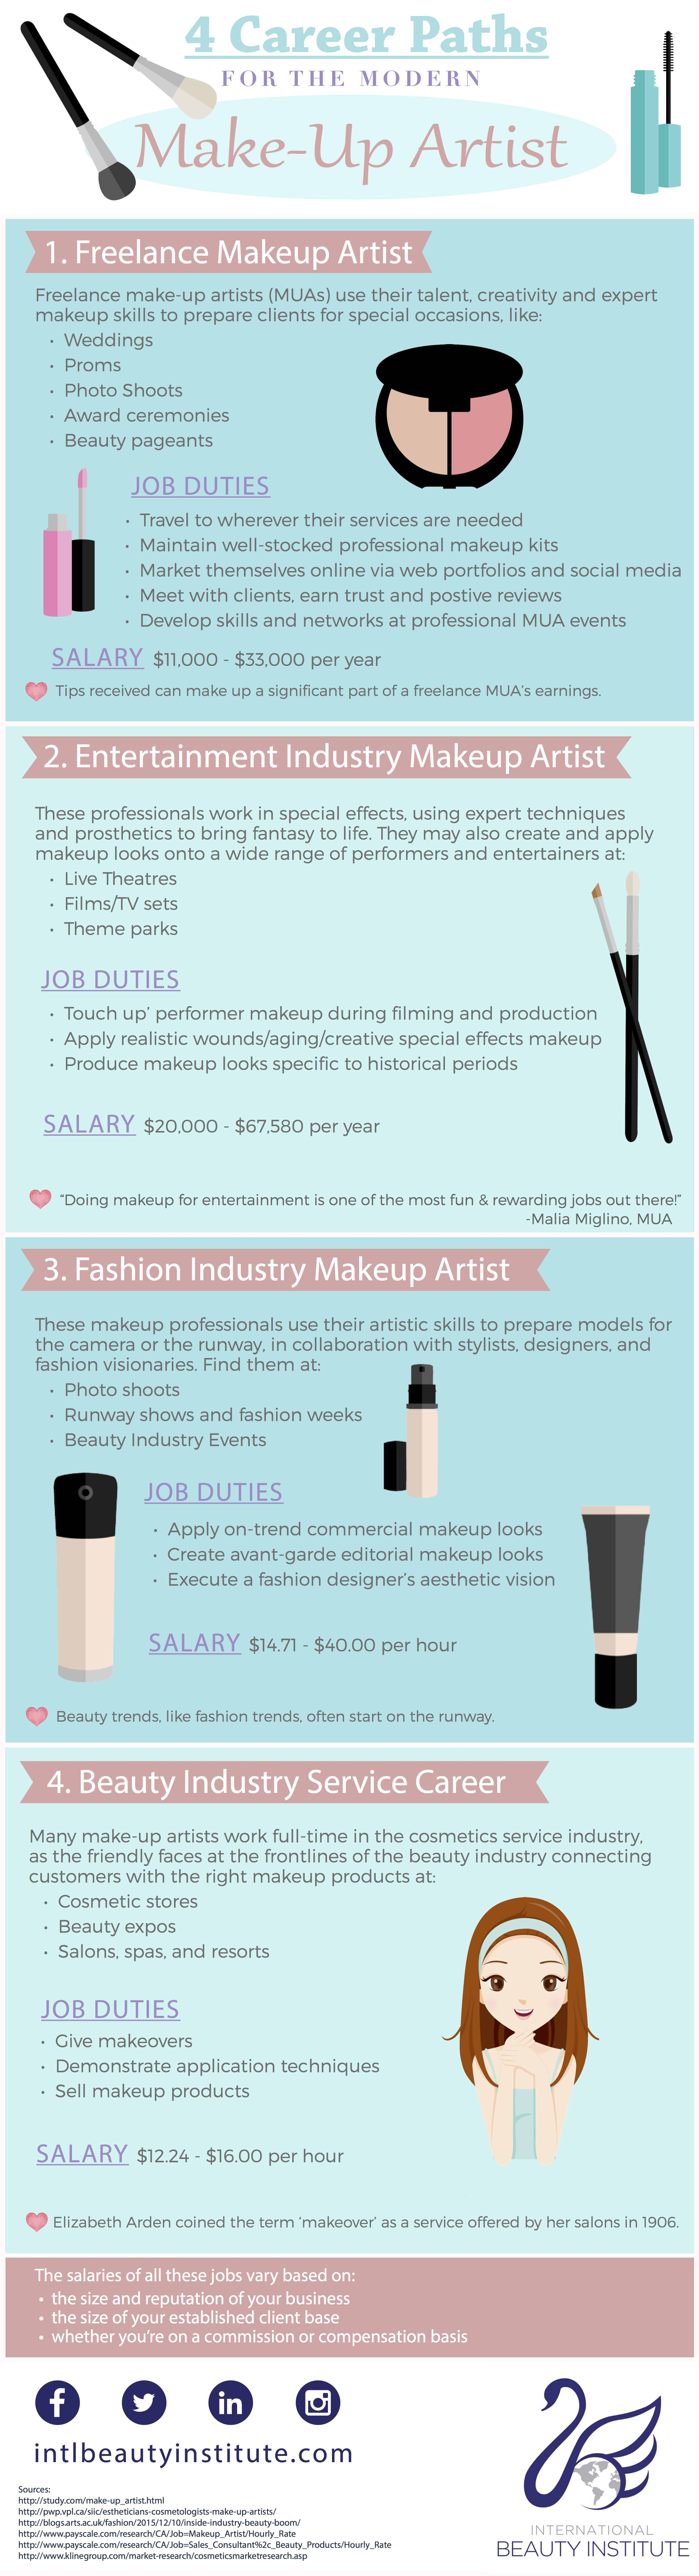 Infographic: 4 Career Paths for the Modern Make-Up Artist